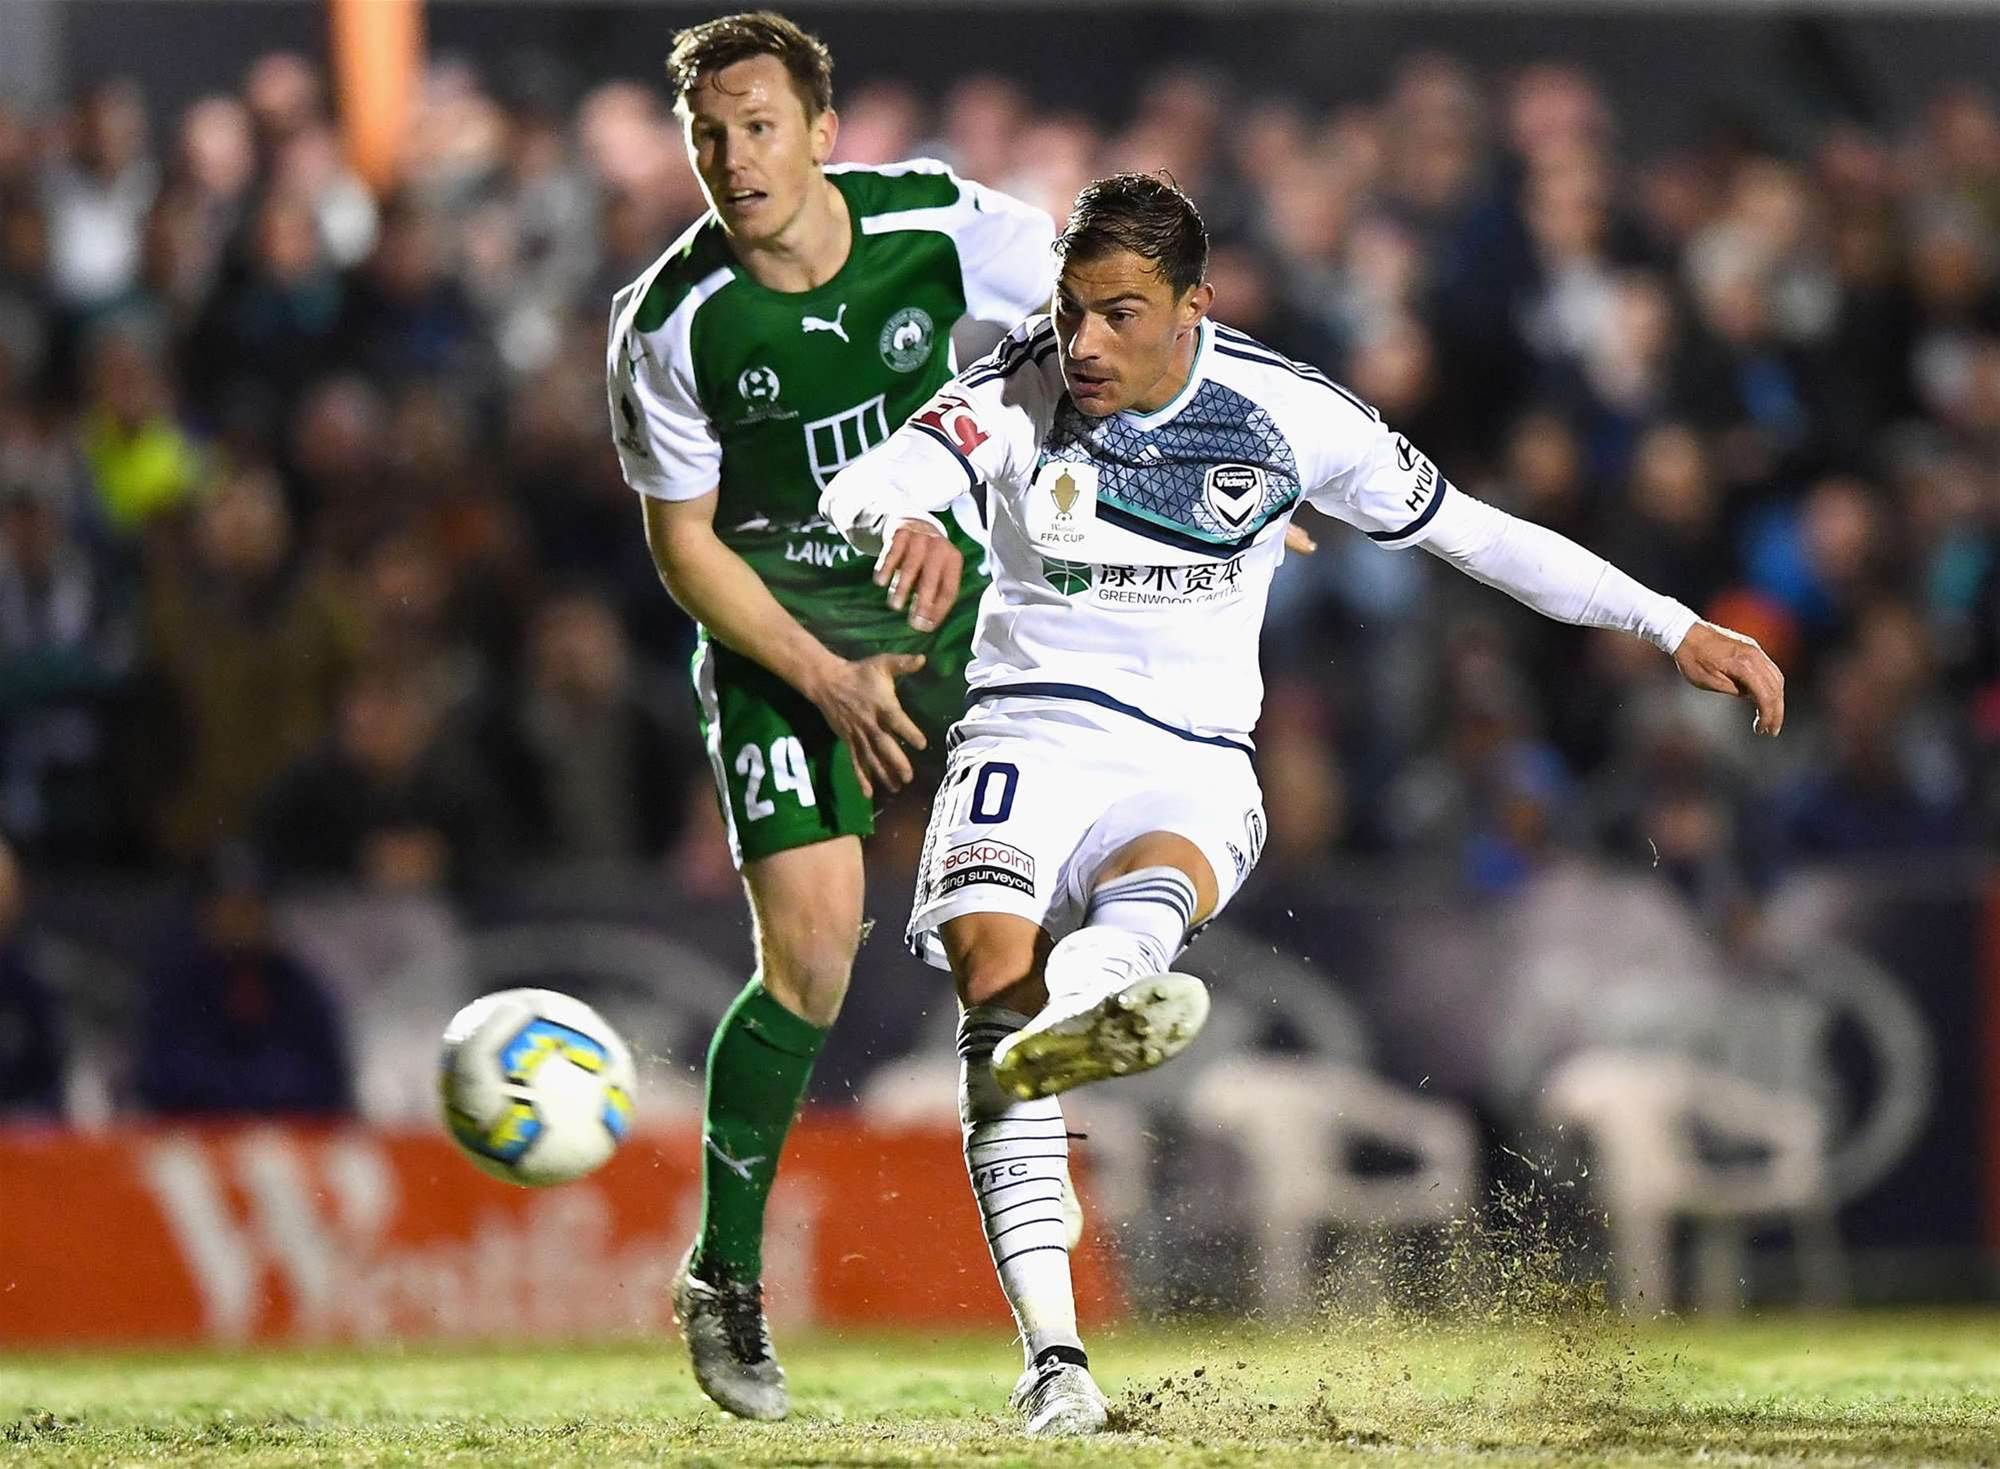 Gallery: FFA Cup QF match action